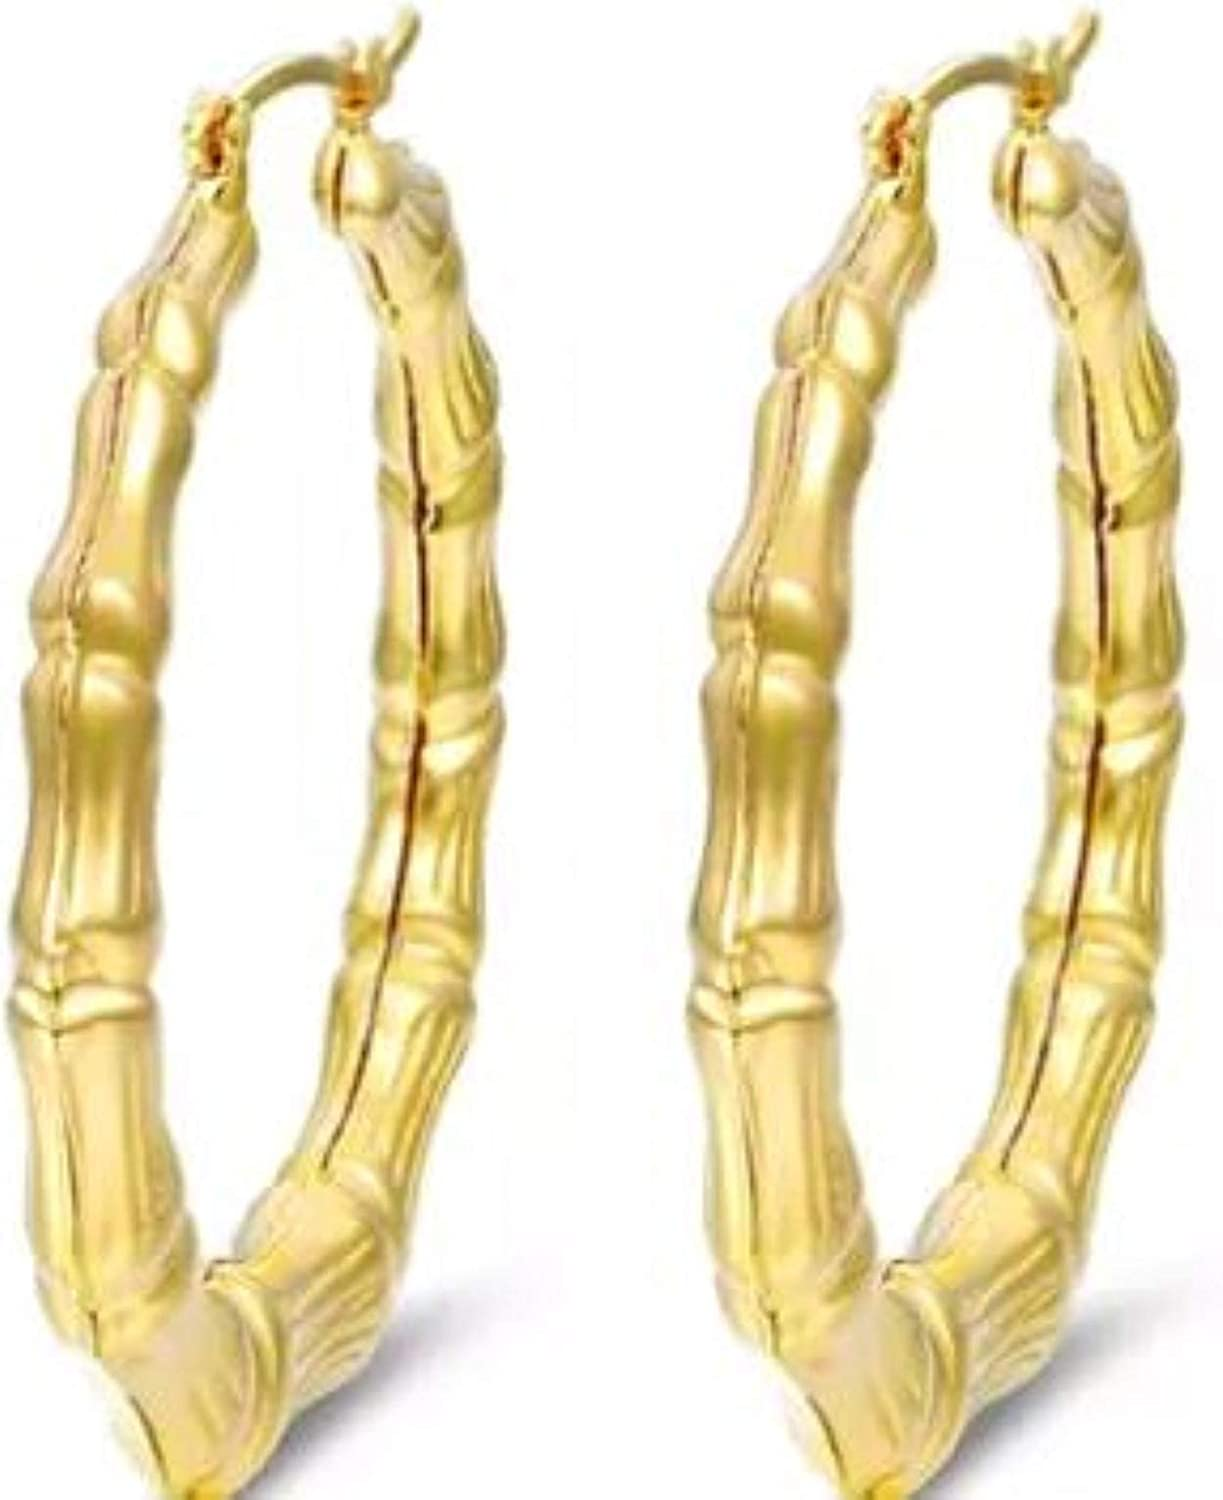 CLASSY MOOD Huge Bamboo Hoop Earrings 18K Gold Plated 6 inches outer Diameter 5 inches inner Diameter 125MM